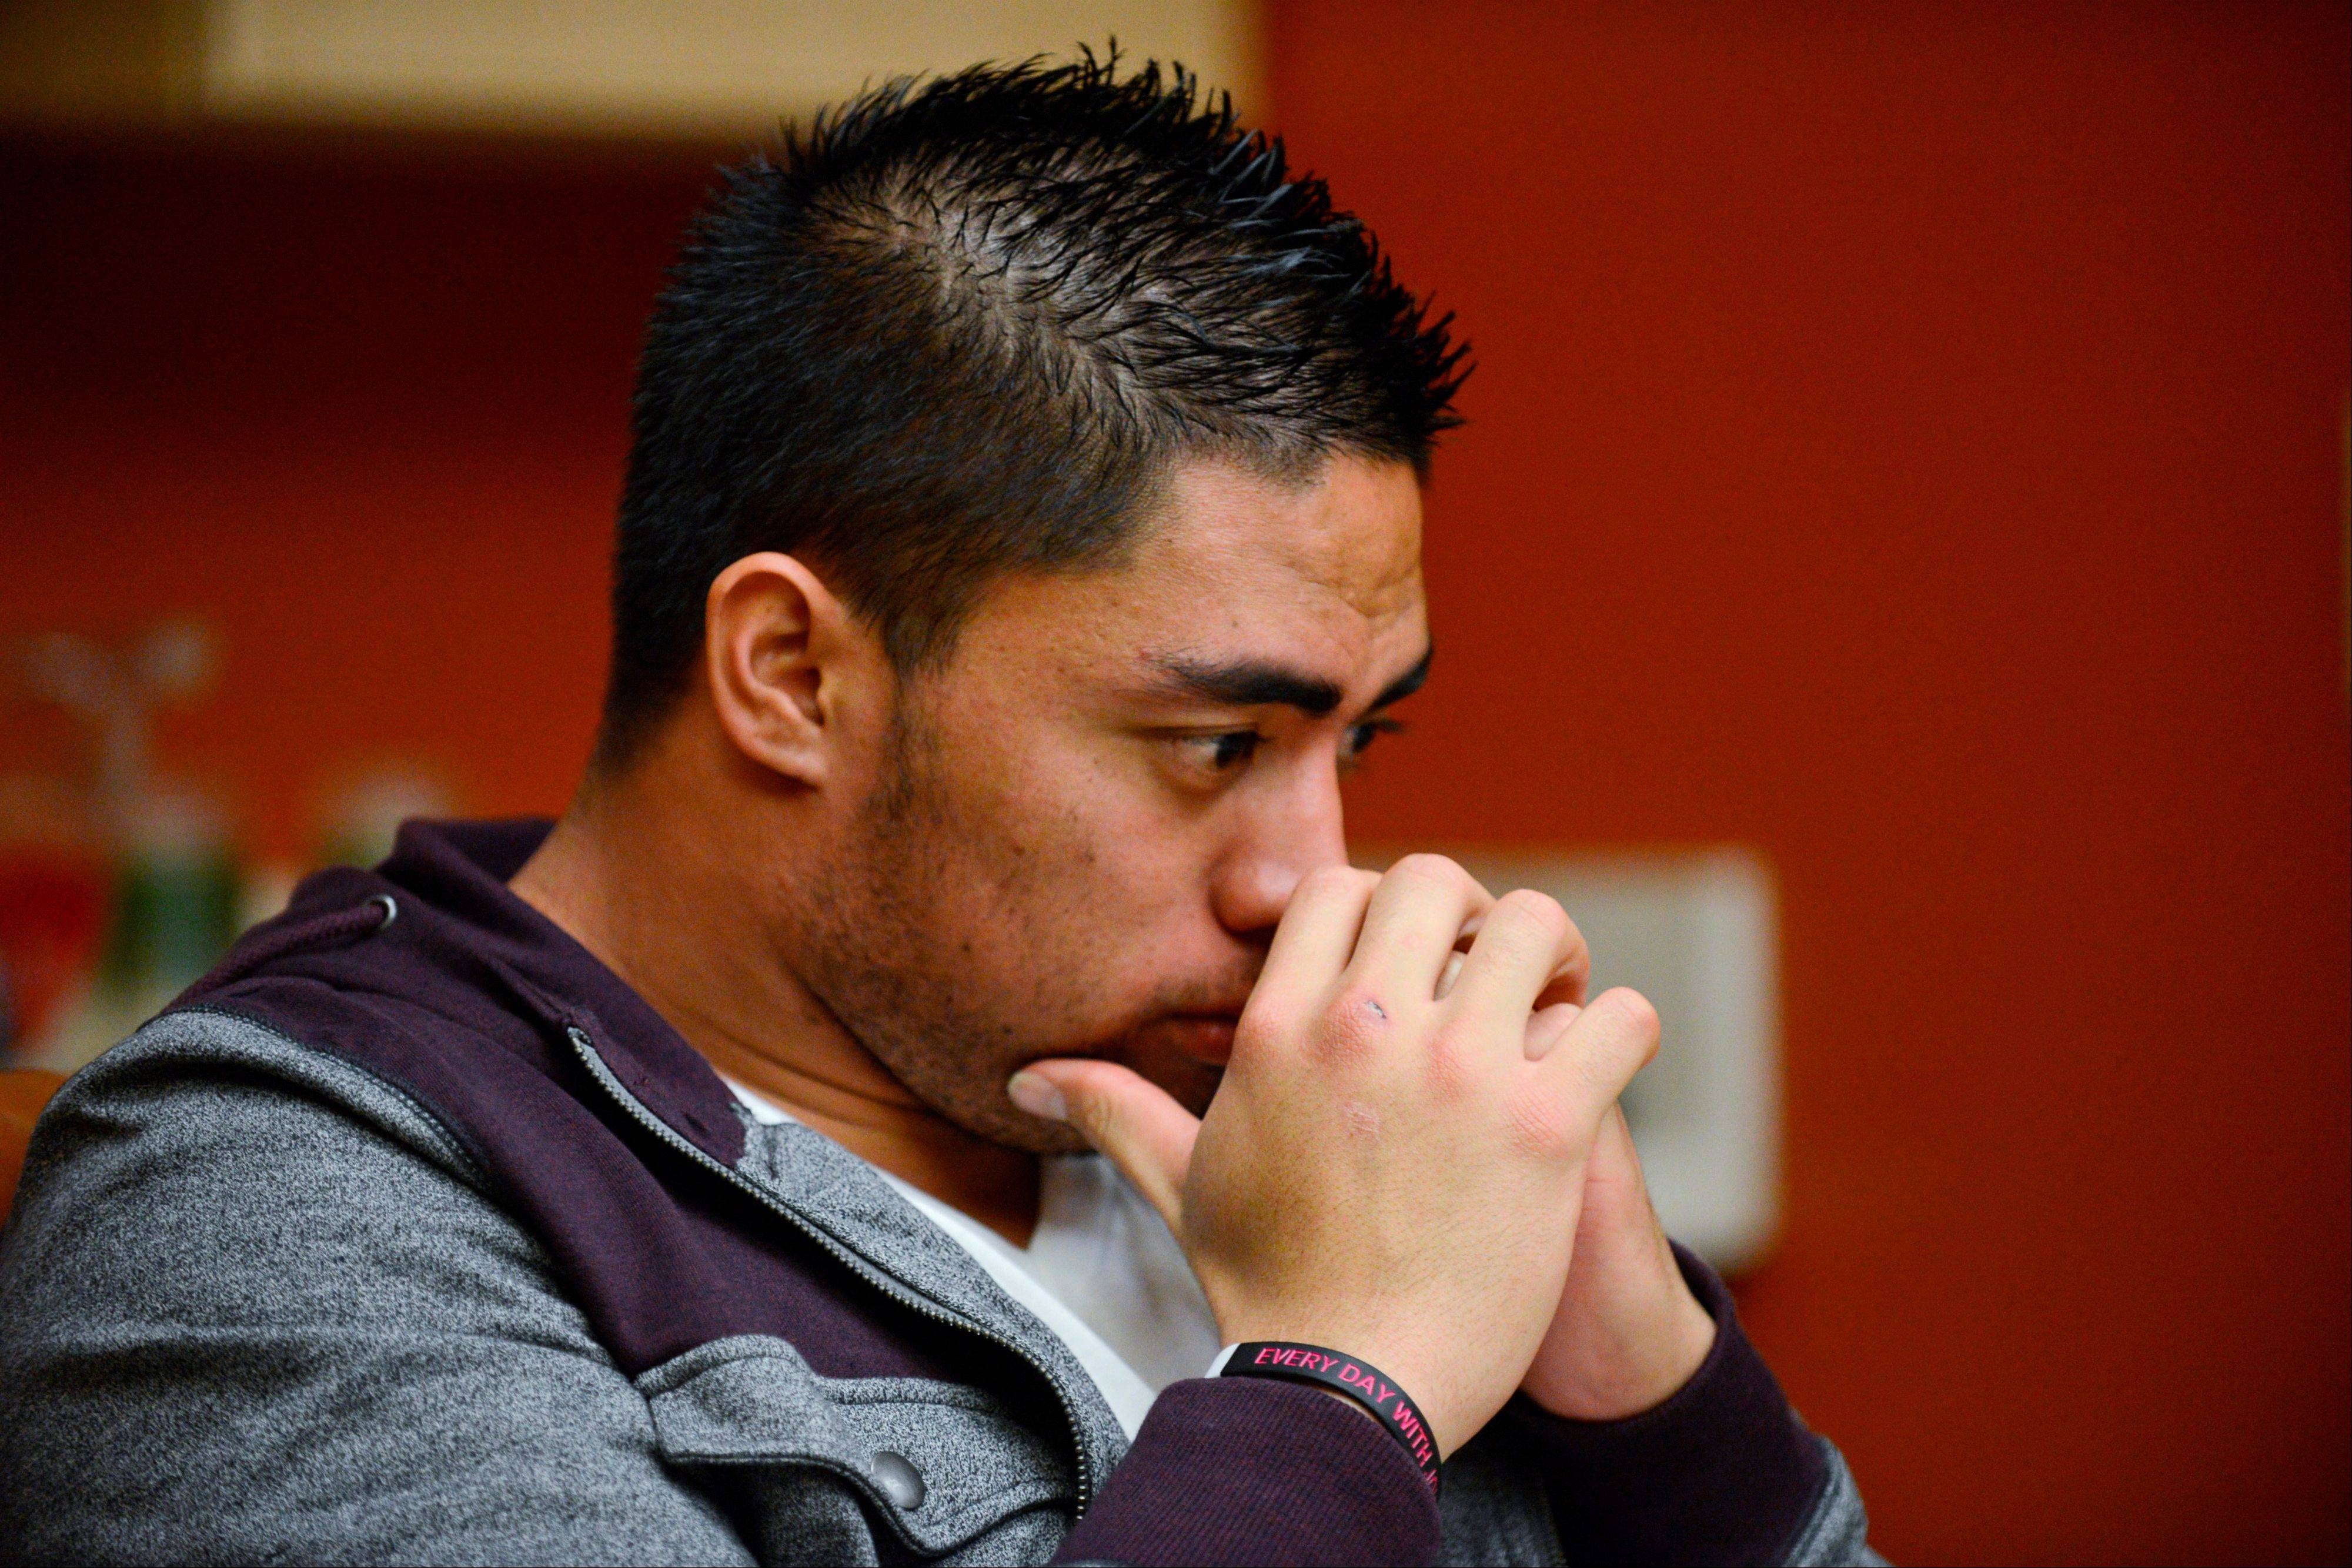 In a photo provided by ESPN, Notre Dame linebacker Manti Te'o pauses during an interview with ESPN last week in Bradenton, Fla.